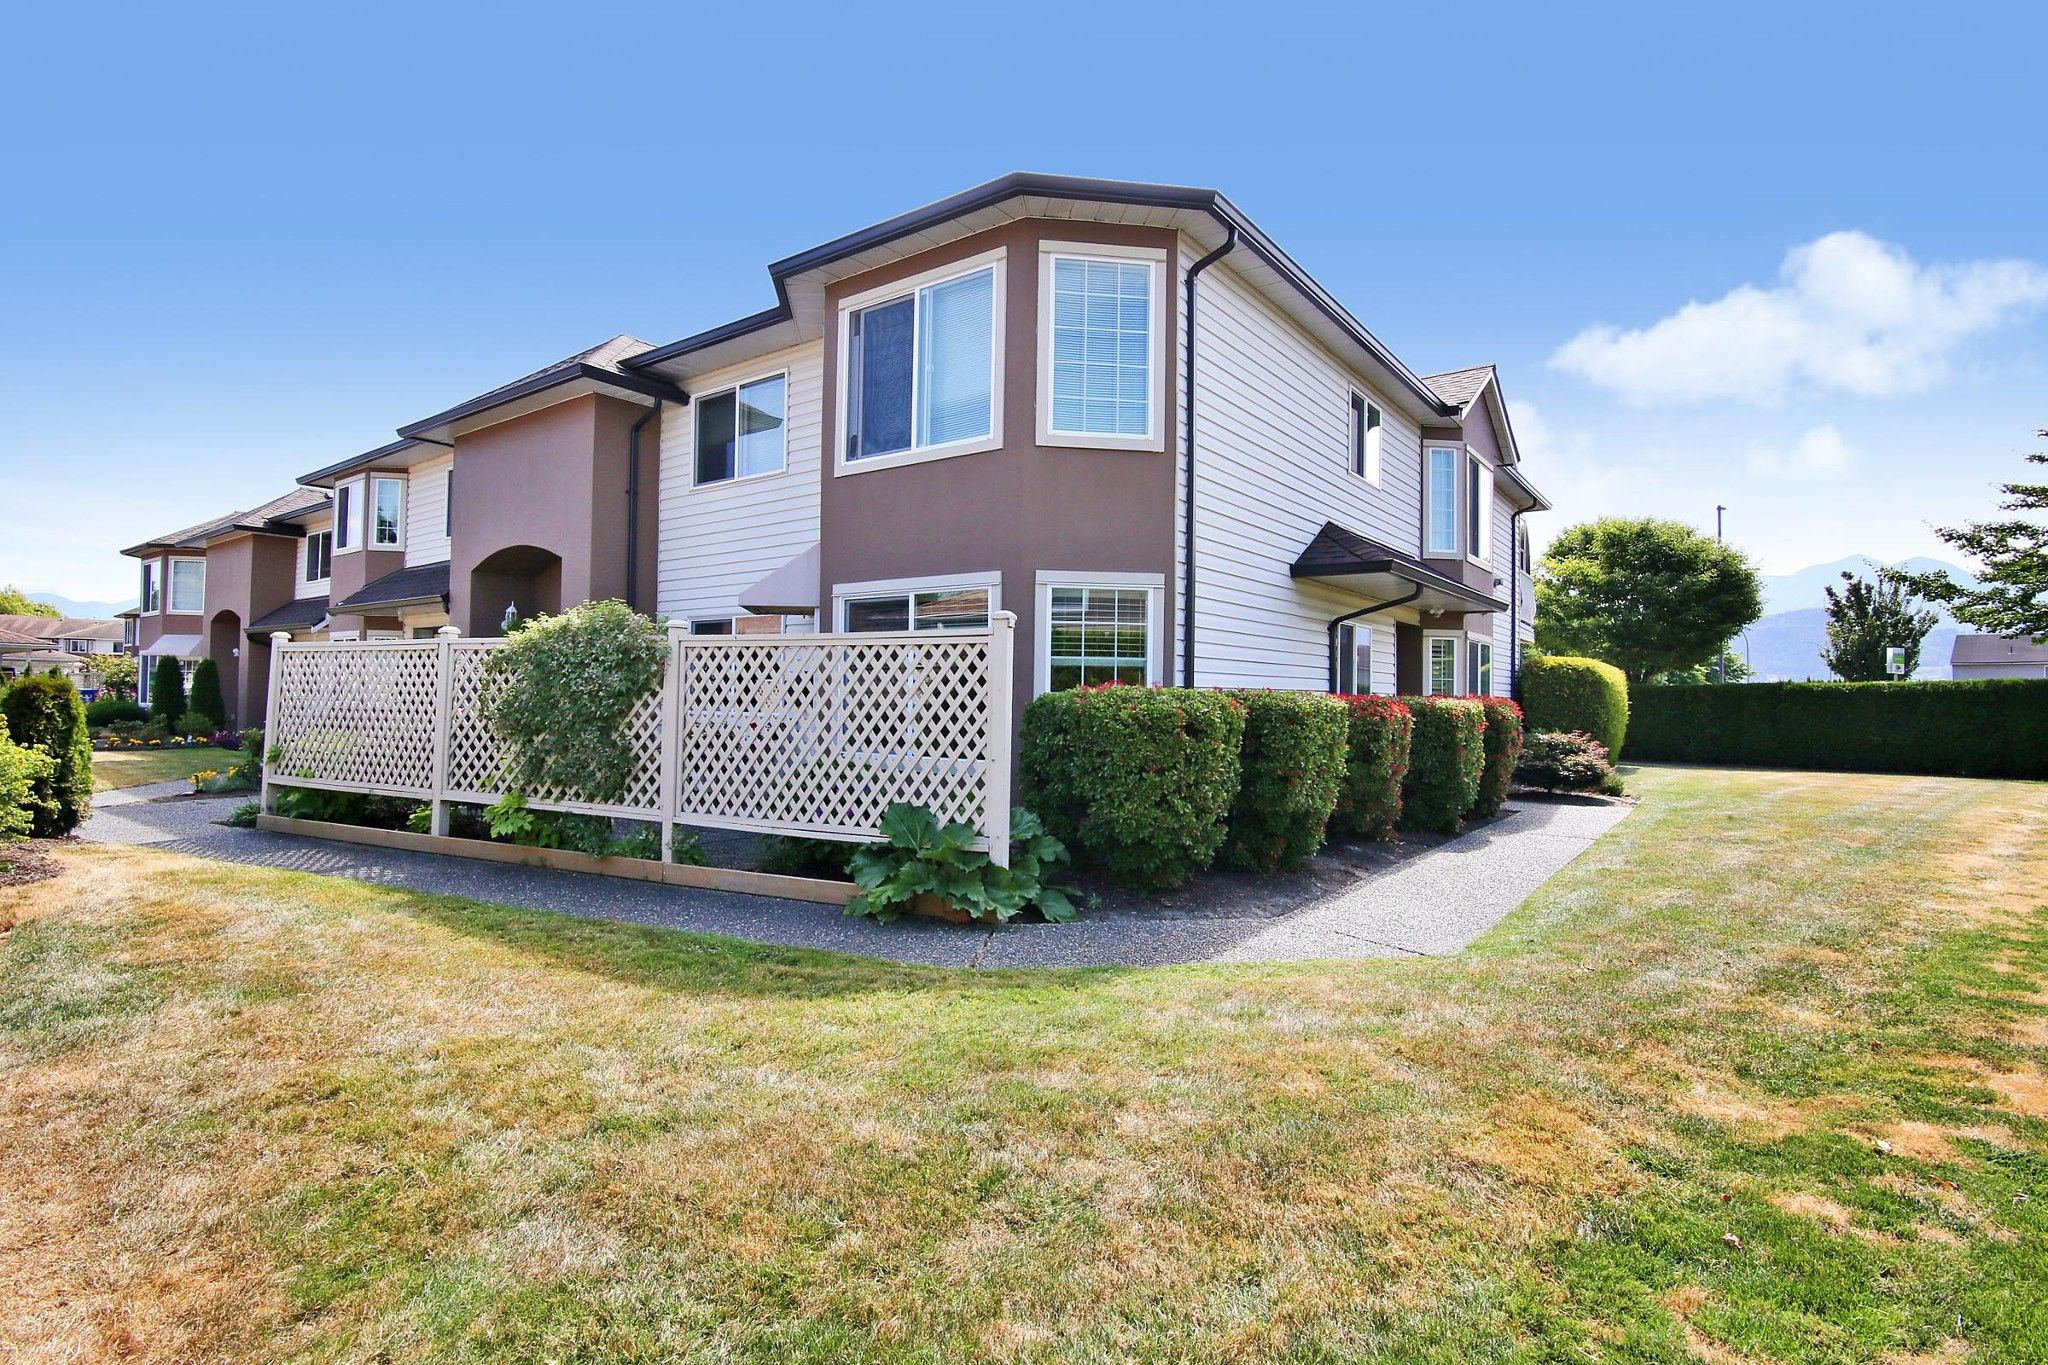 """Main Photo: 1 46350 CESSNA Drive in Chilliwack: Chilliwack E Young-Yale Townhouse for sale in """"Hamley Estates"""" : MLS®# R2606348"""